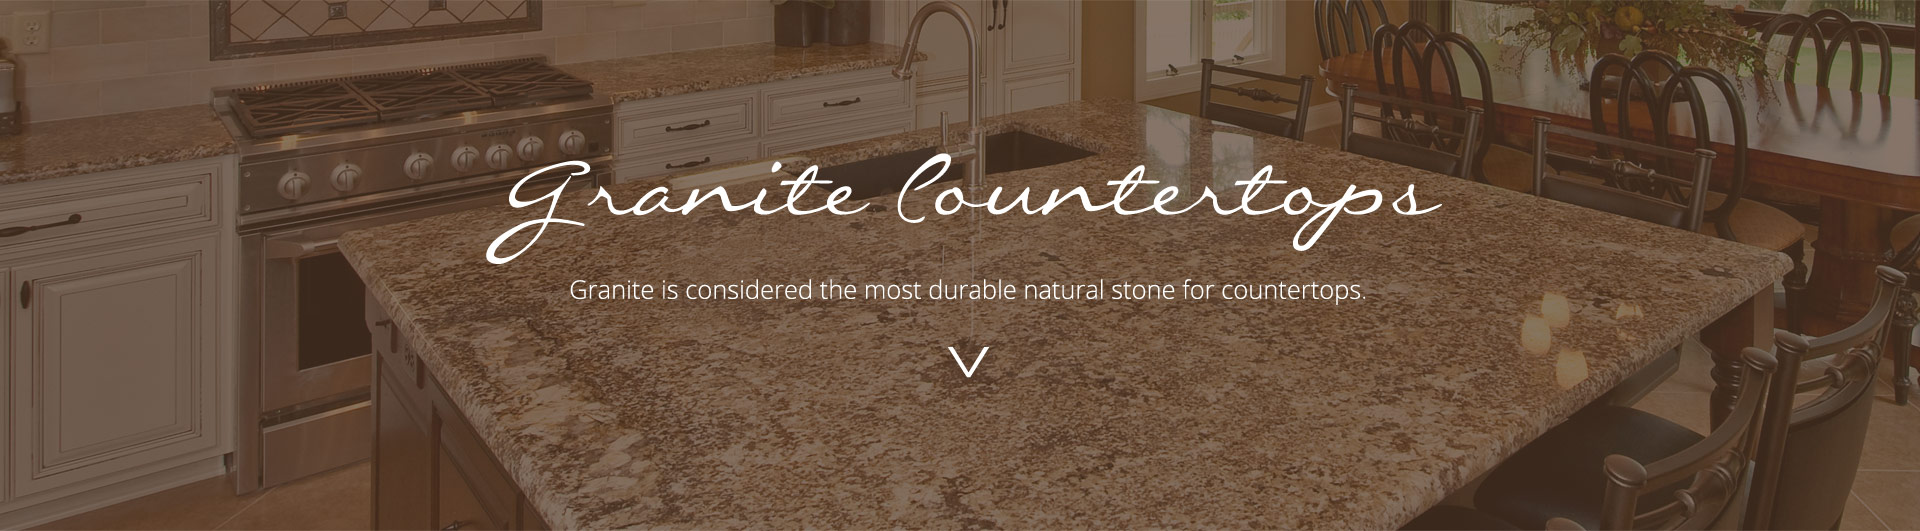 Granite is considered the most durable natural stone for countertops.